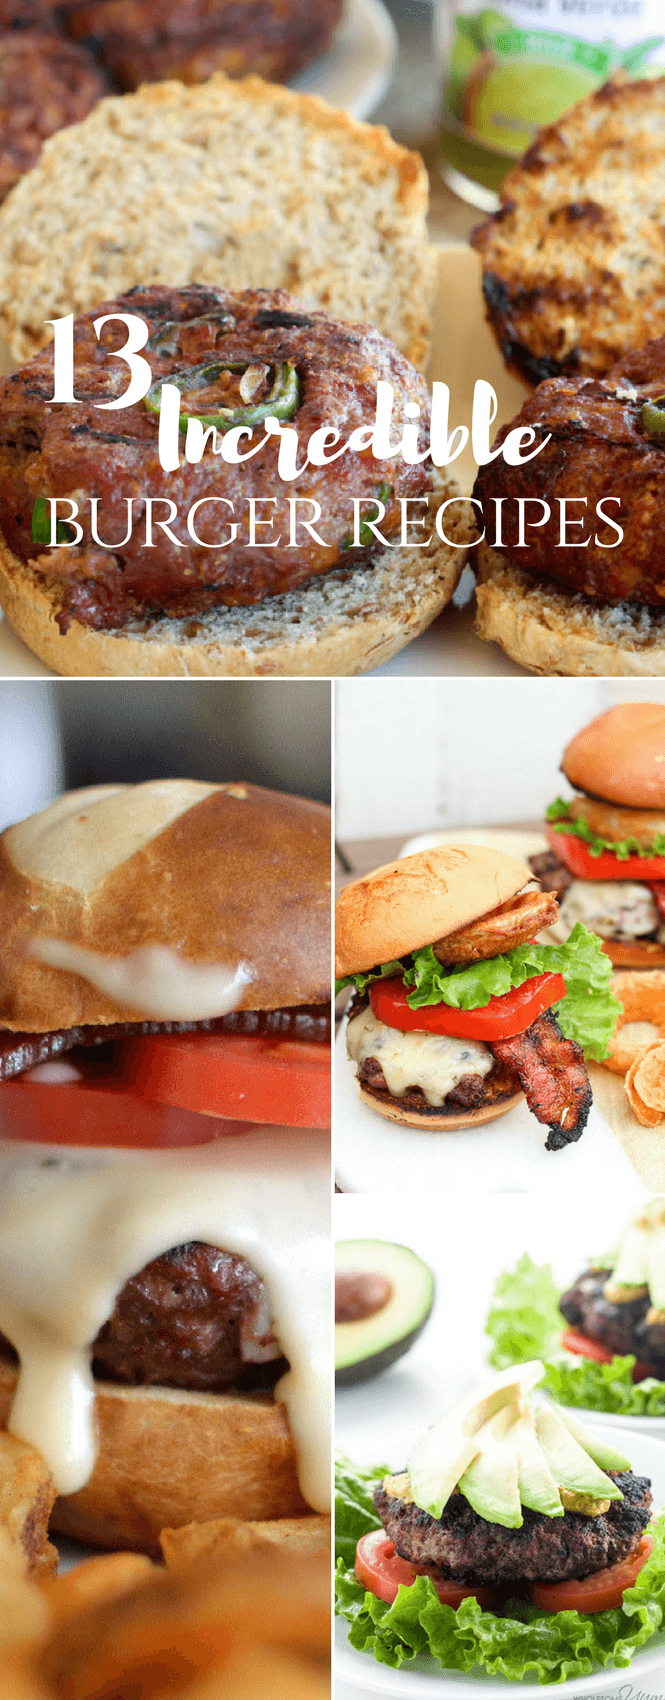 Incredible burger recipes